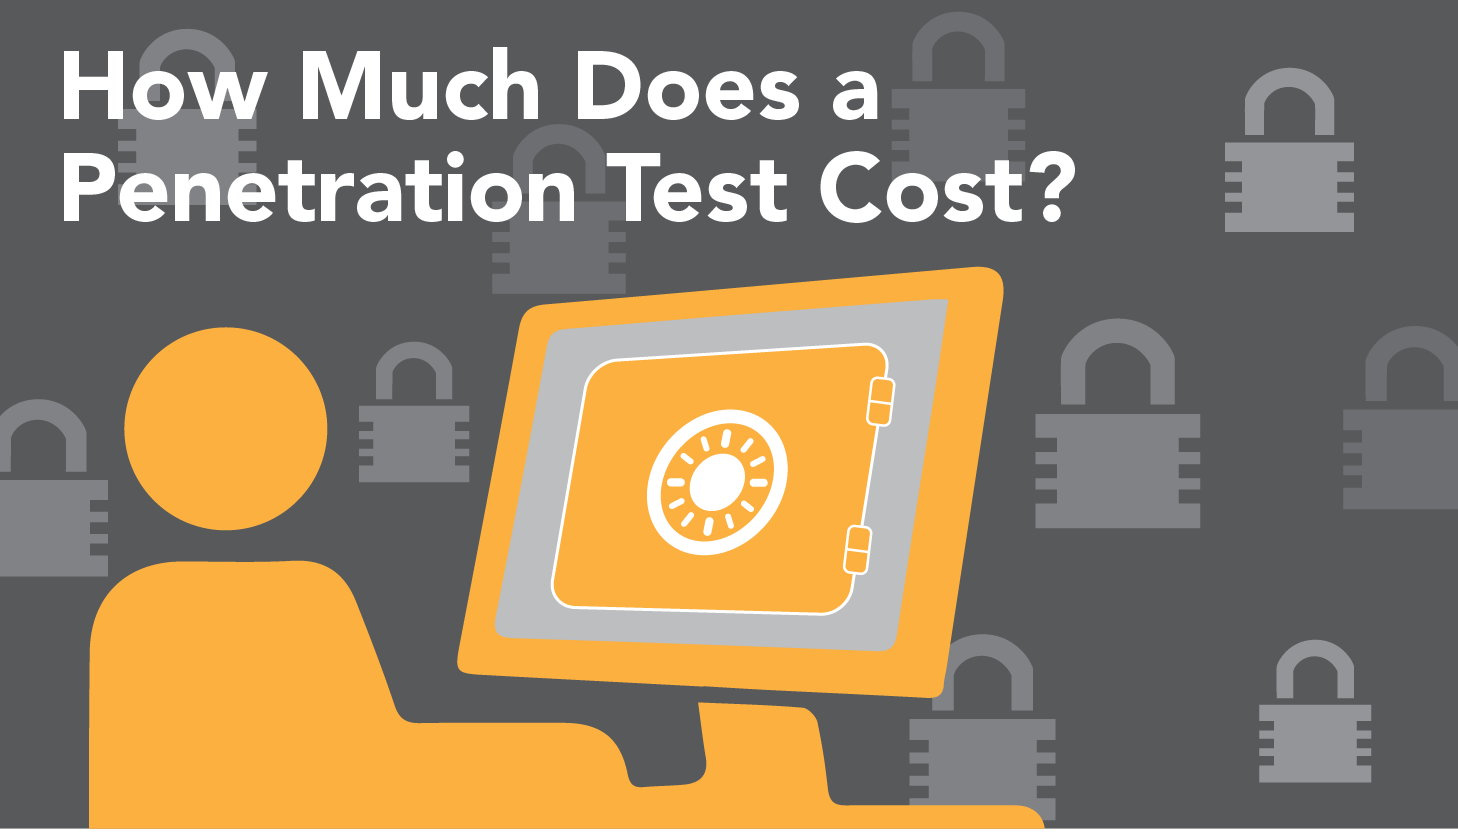 When should you do penetration testing